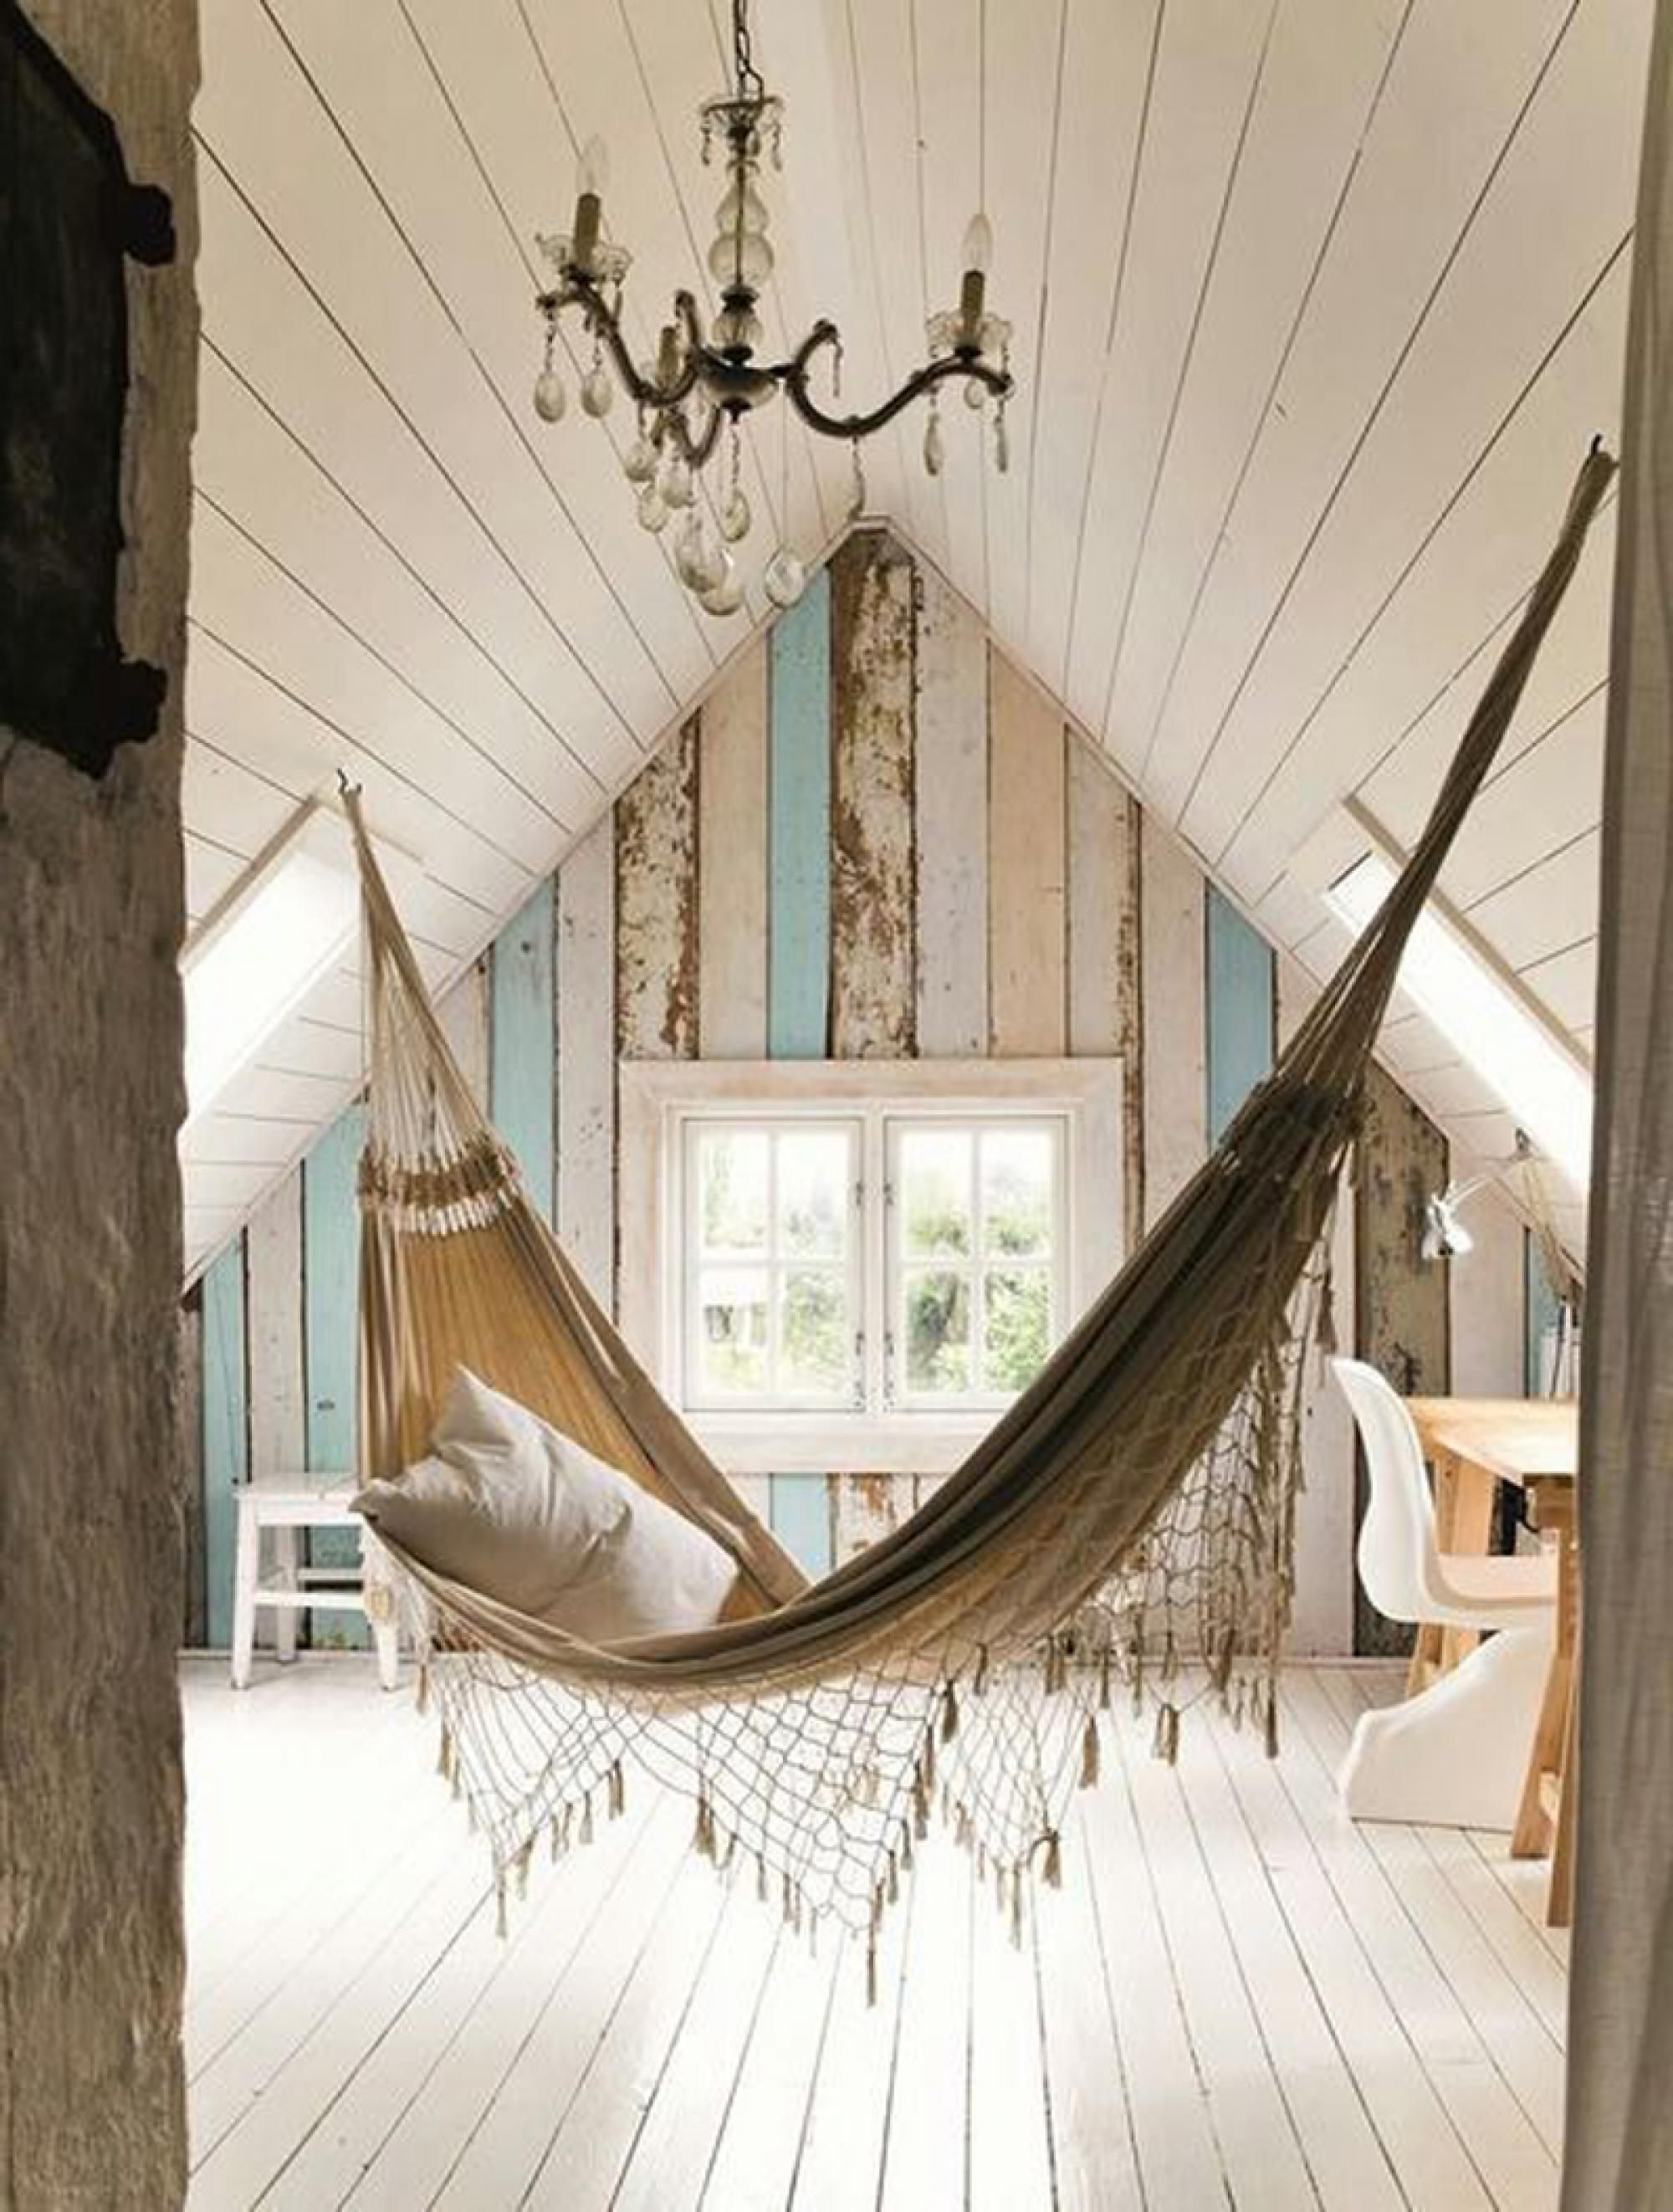 Hammock Chair For Bedroom How To Clean Plastic Chairs And Tables Awesome 19 Creative Room Decorating Ideas With Hammocks